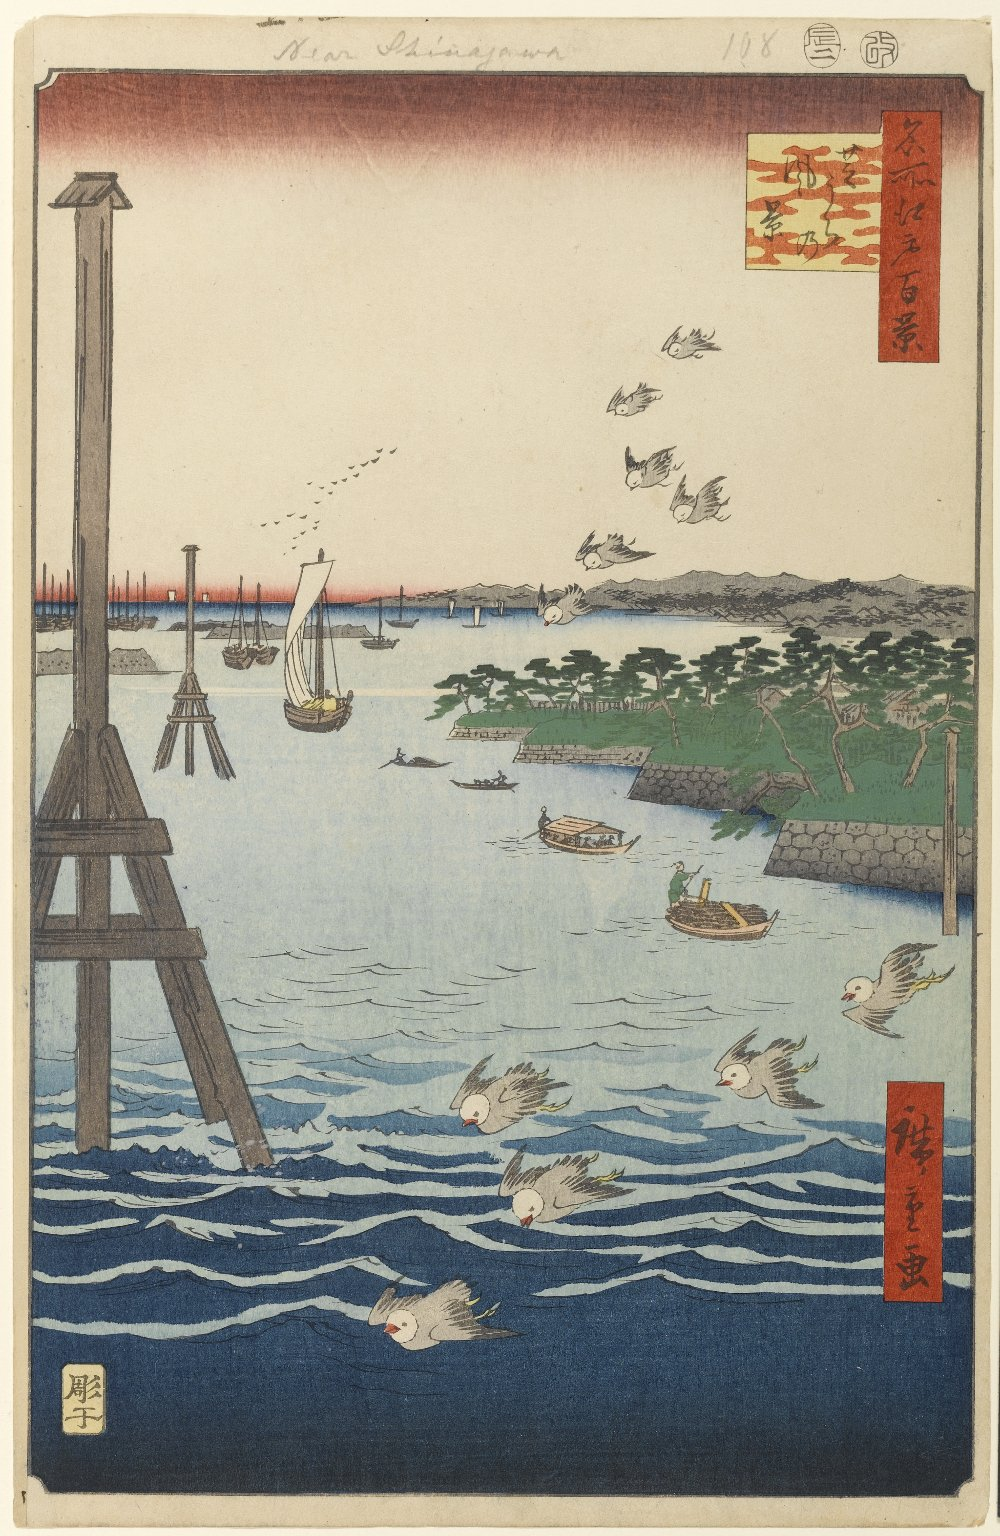 Brooklyn Museum: View of Shiba Coast, No. 108 from One Hundred Famous Views of Edo